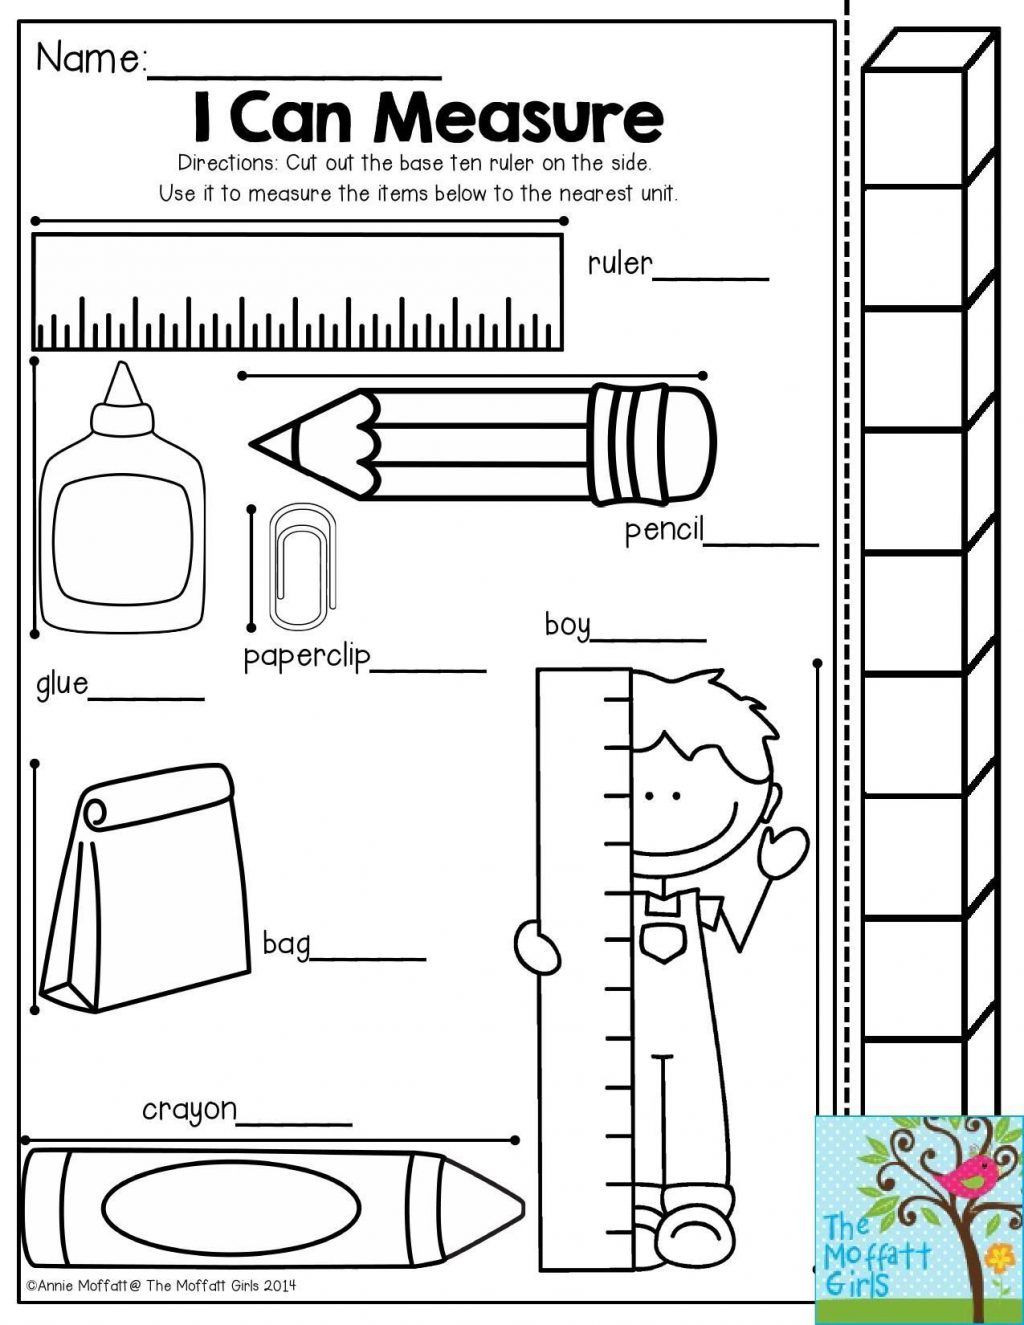 3rd Grade Measurement Worksheets 1st Grade Measurement Worksheets